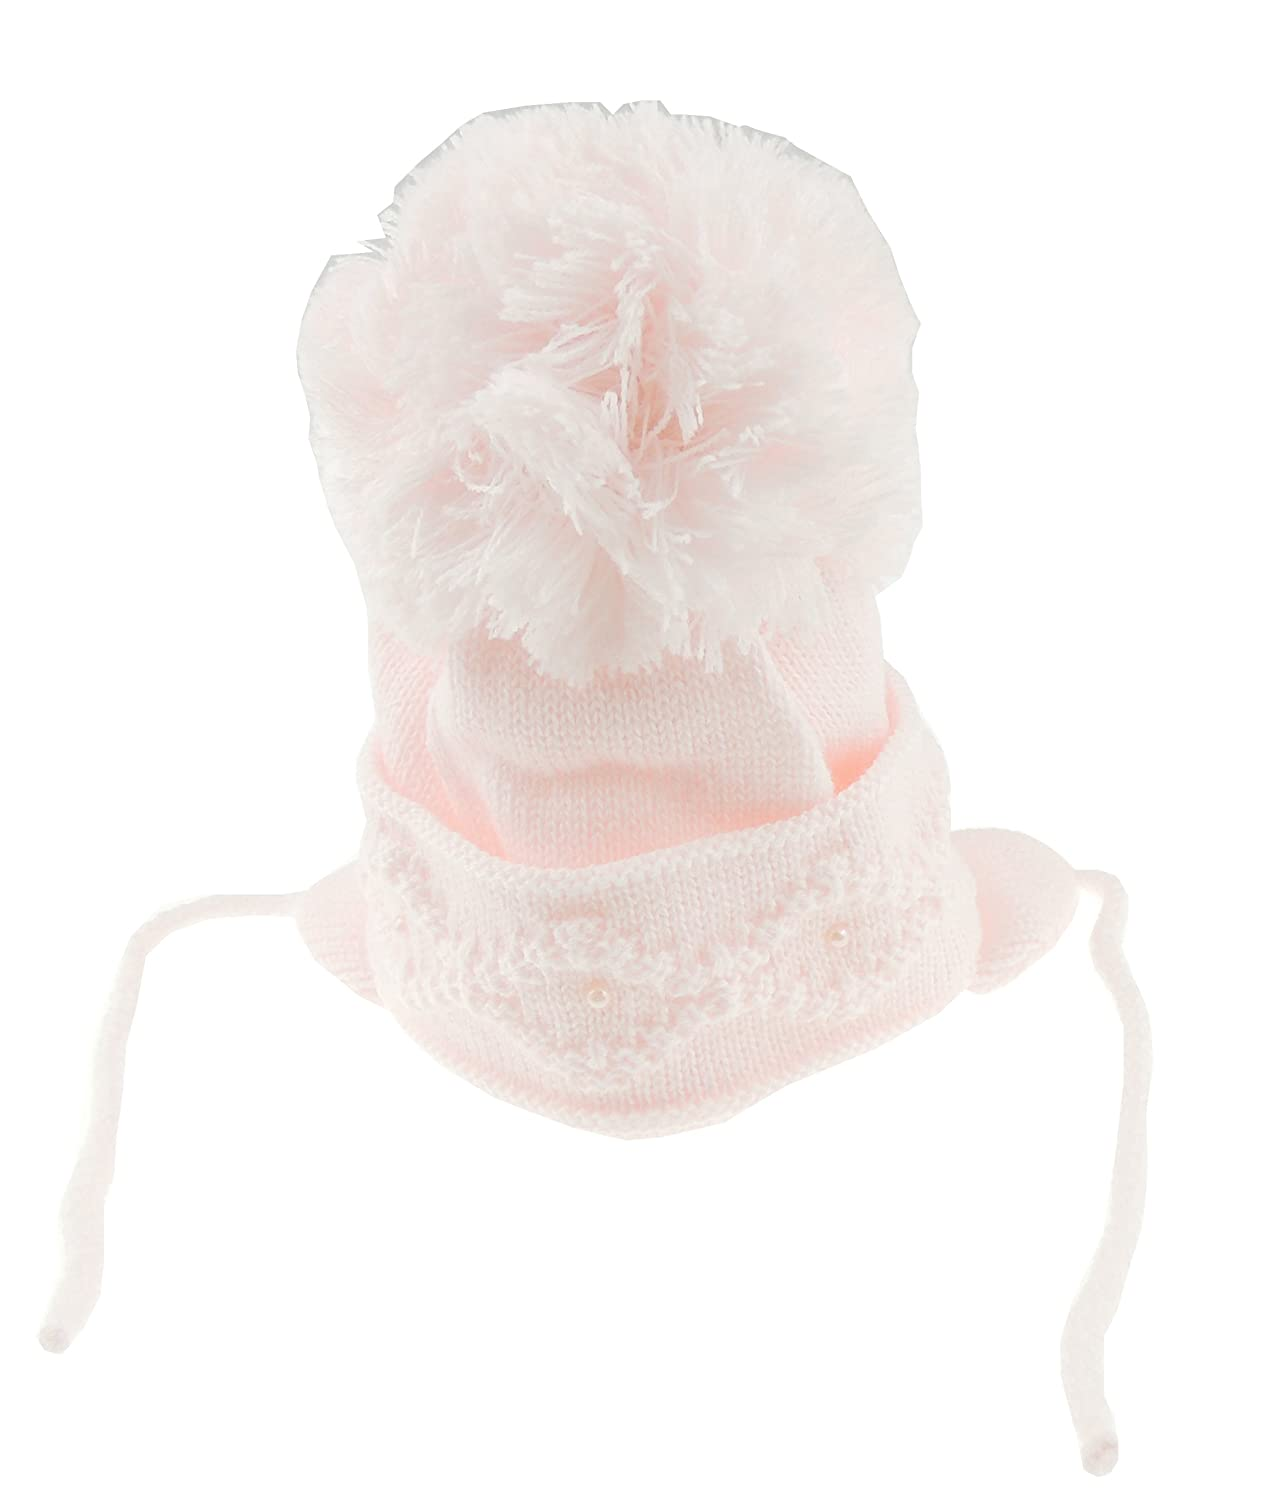 Soft Baby Girls Boys Warm Winter Chunky Swirl Knit Pom Pom Bobble Turn Up Inca Style Hat White 6-12 Months Glamour Girlz